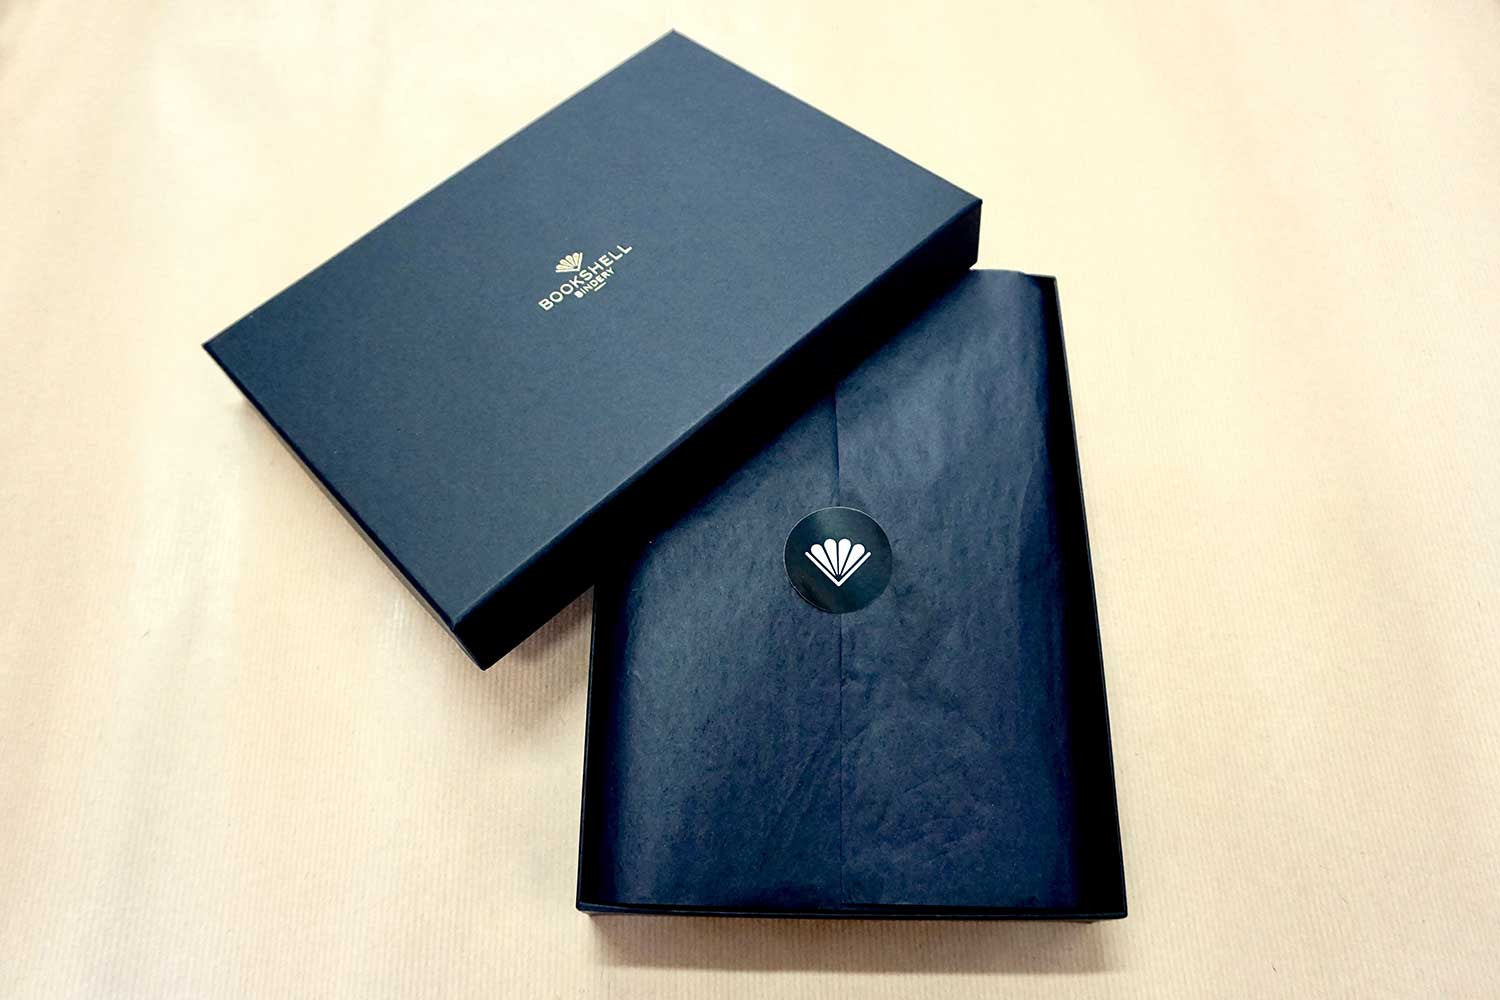 Leather journal ready to gift in beautiful packaging from Bookshell Bindery